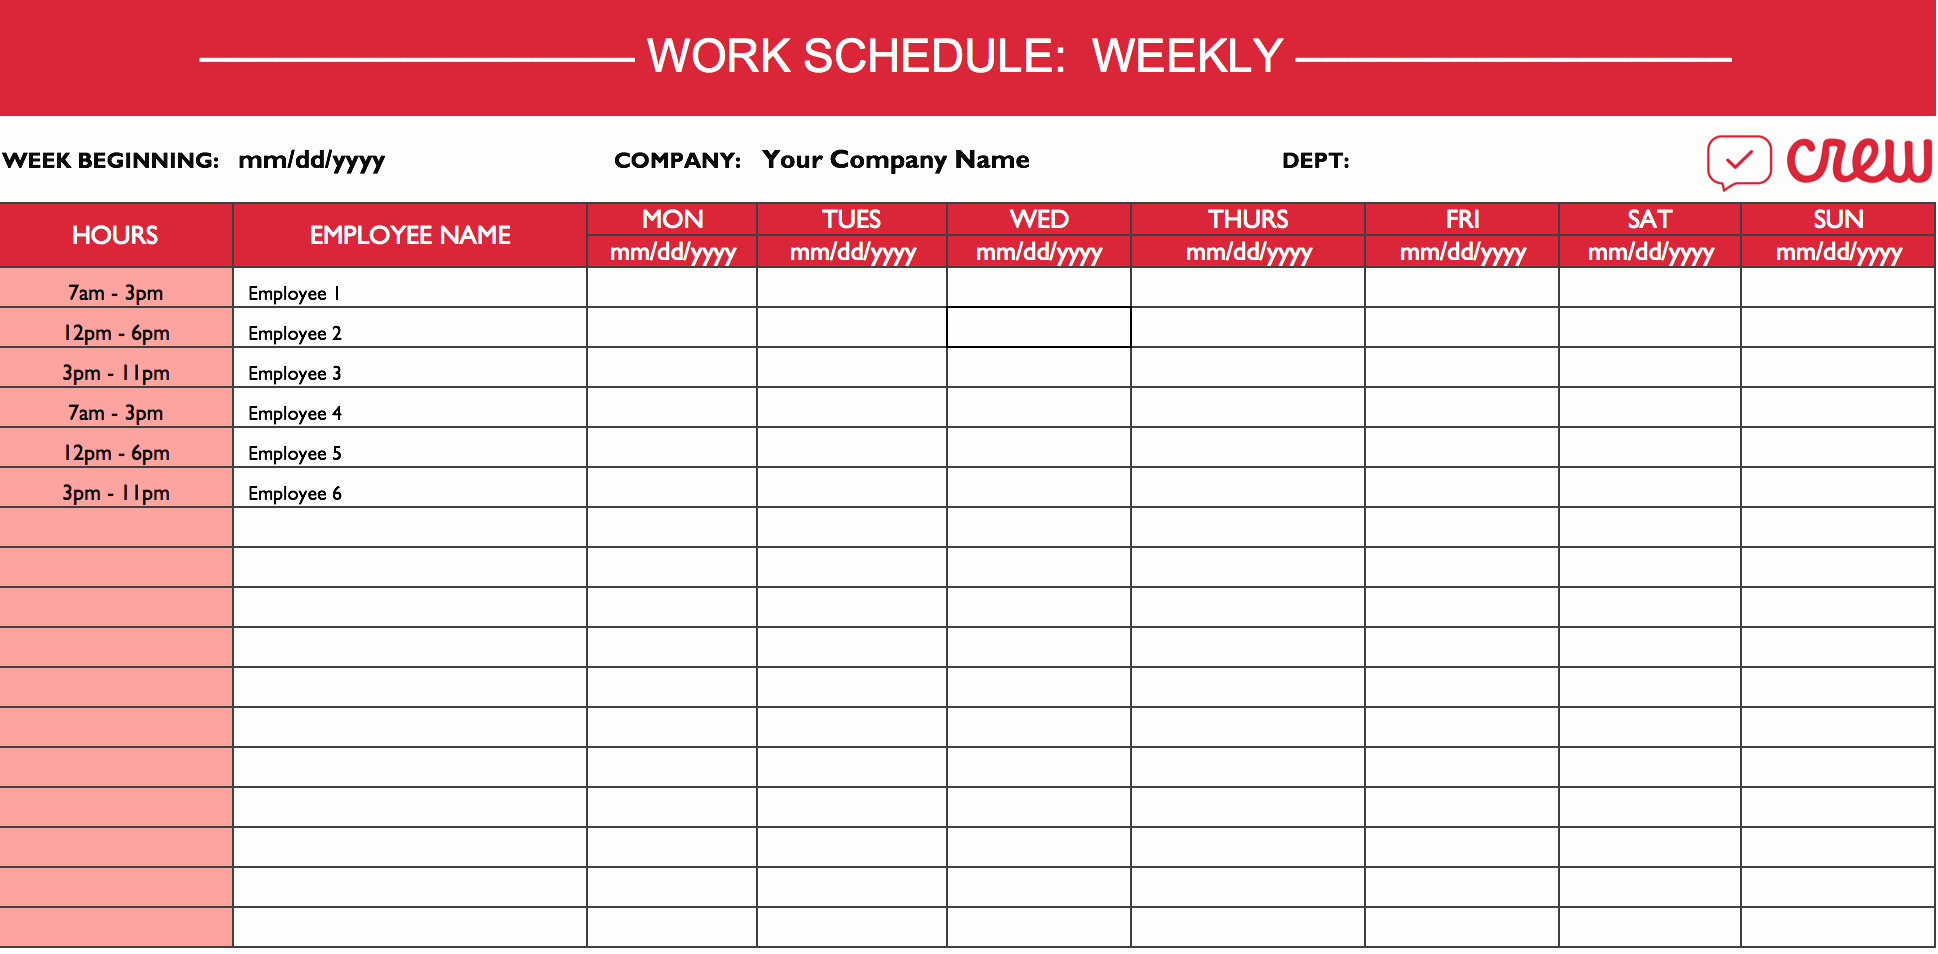 Restaurant Work Schedule Template Lovely Weekly Work Schedule Template I Crew